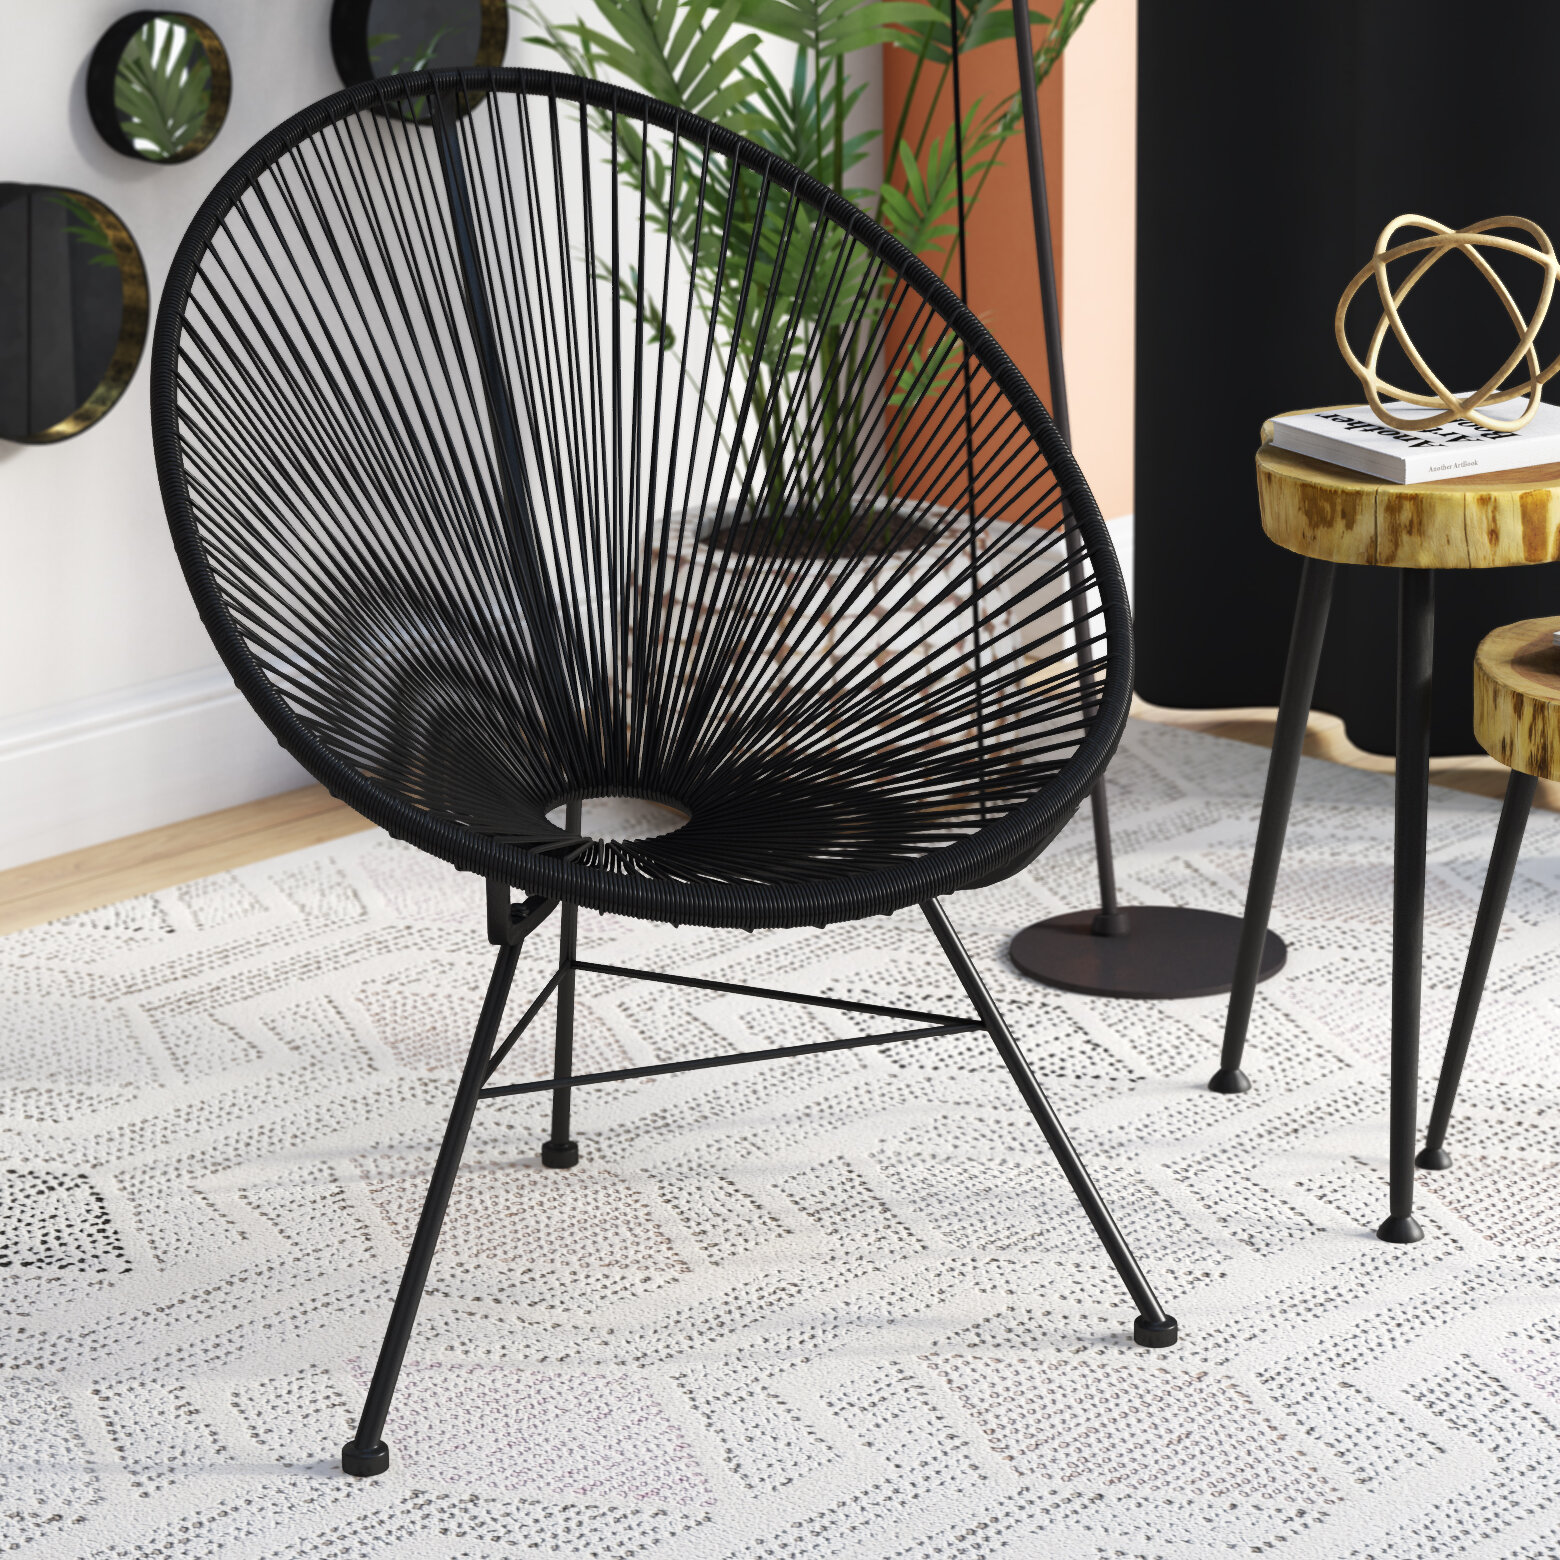 Ivy Bronx Bradley Papasan Chair & Reviews | Wayfair